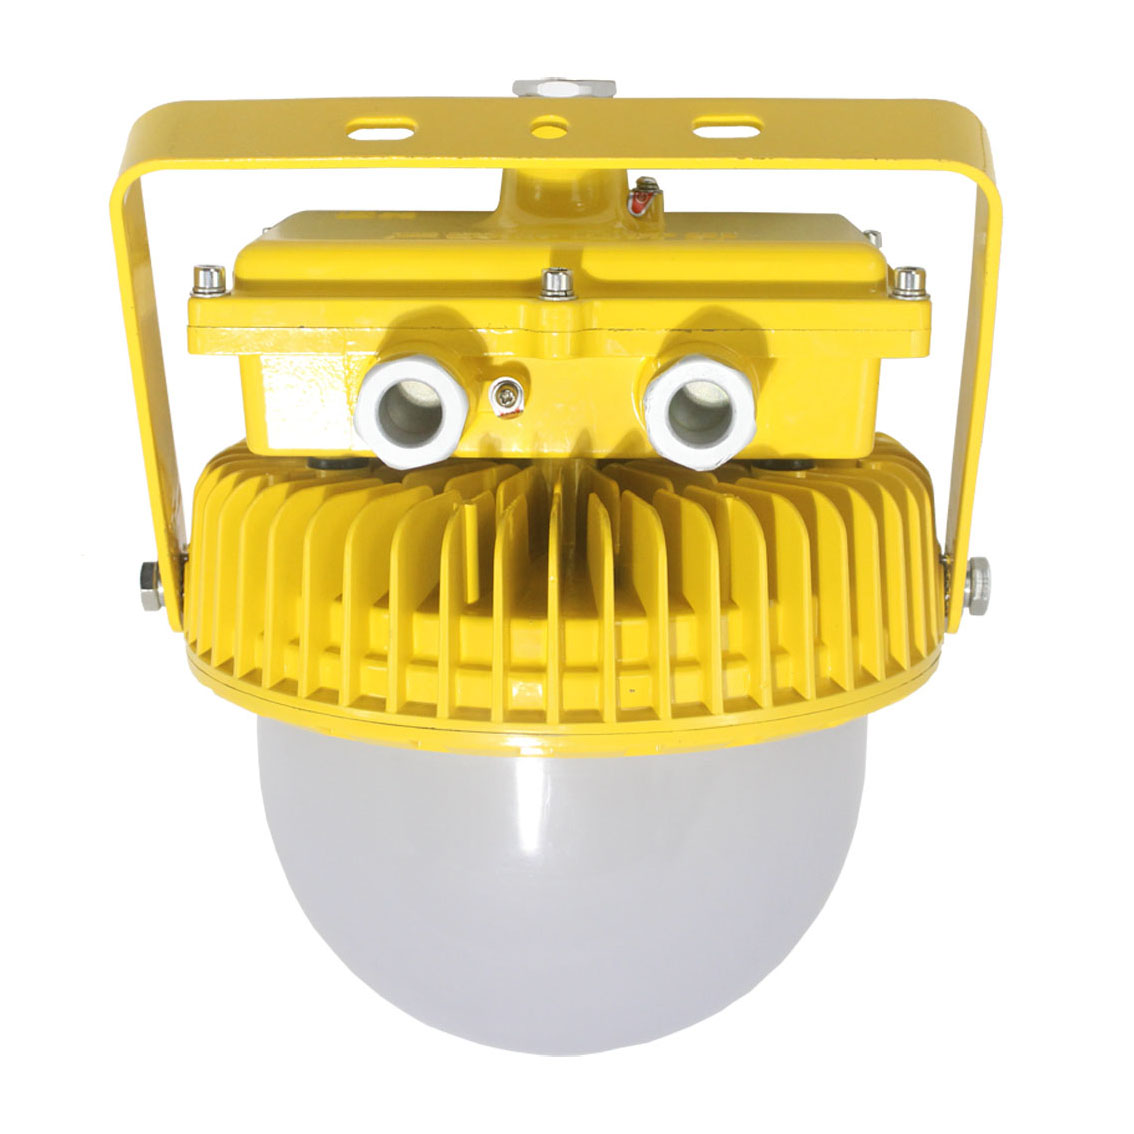 MAXL-5050F,5070F 50W,70W Explosion Proof Platform Light